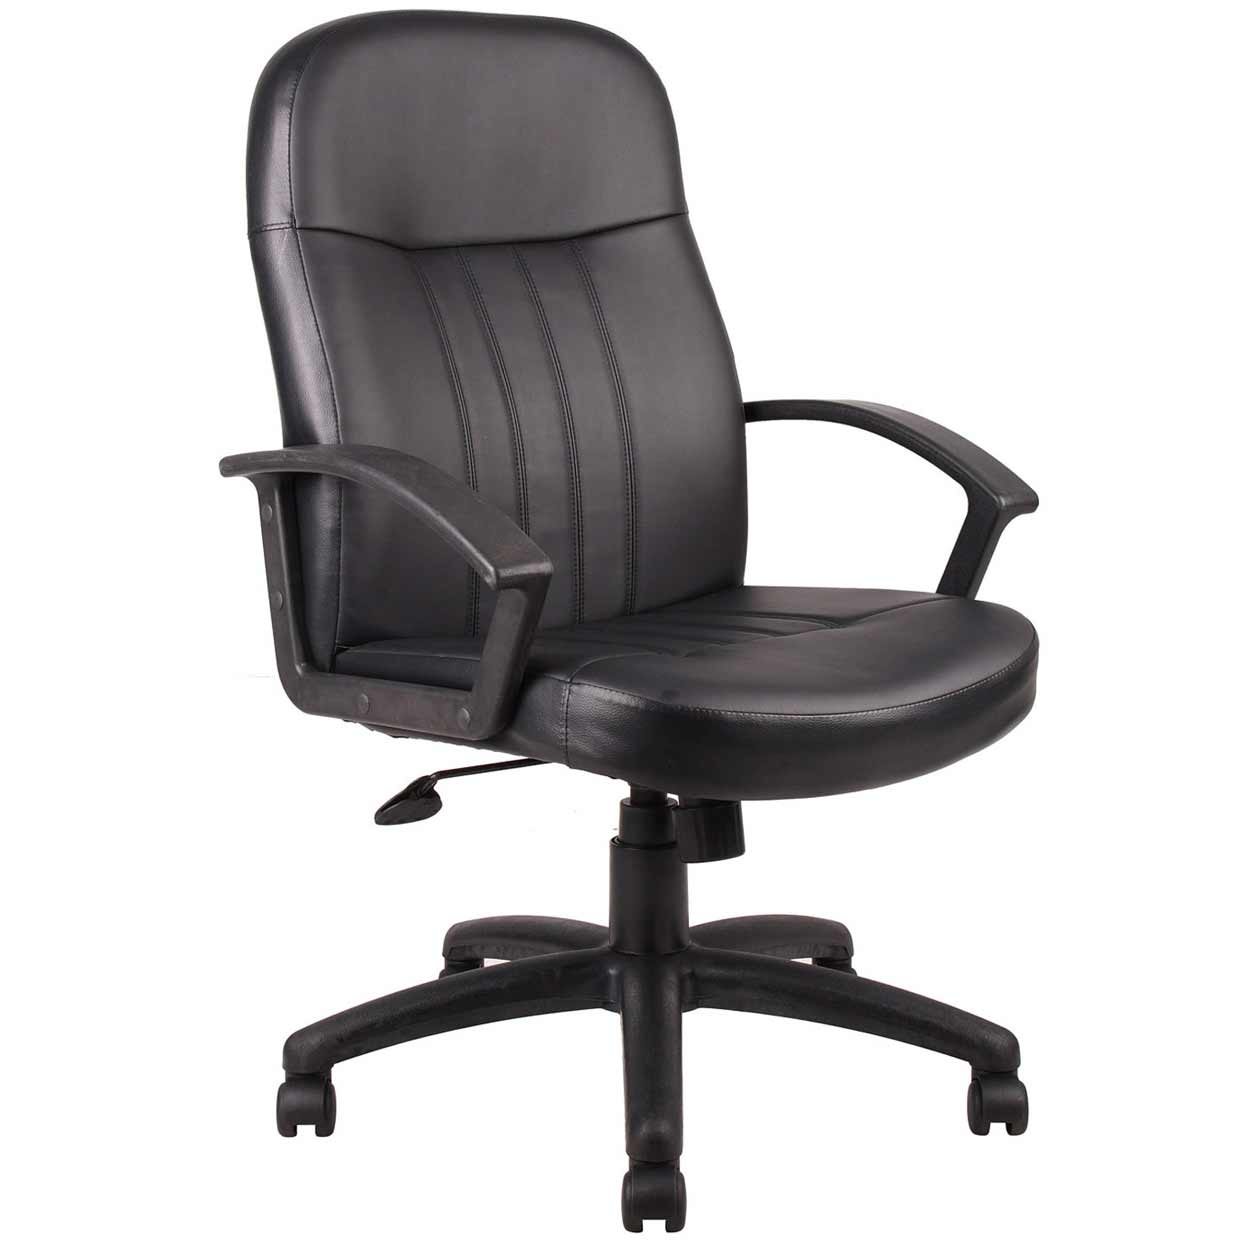 ergonomic office seat with lumbar support